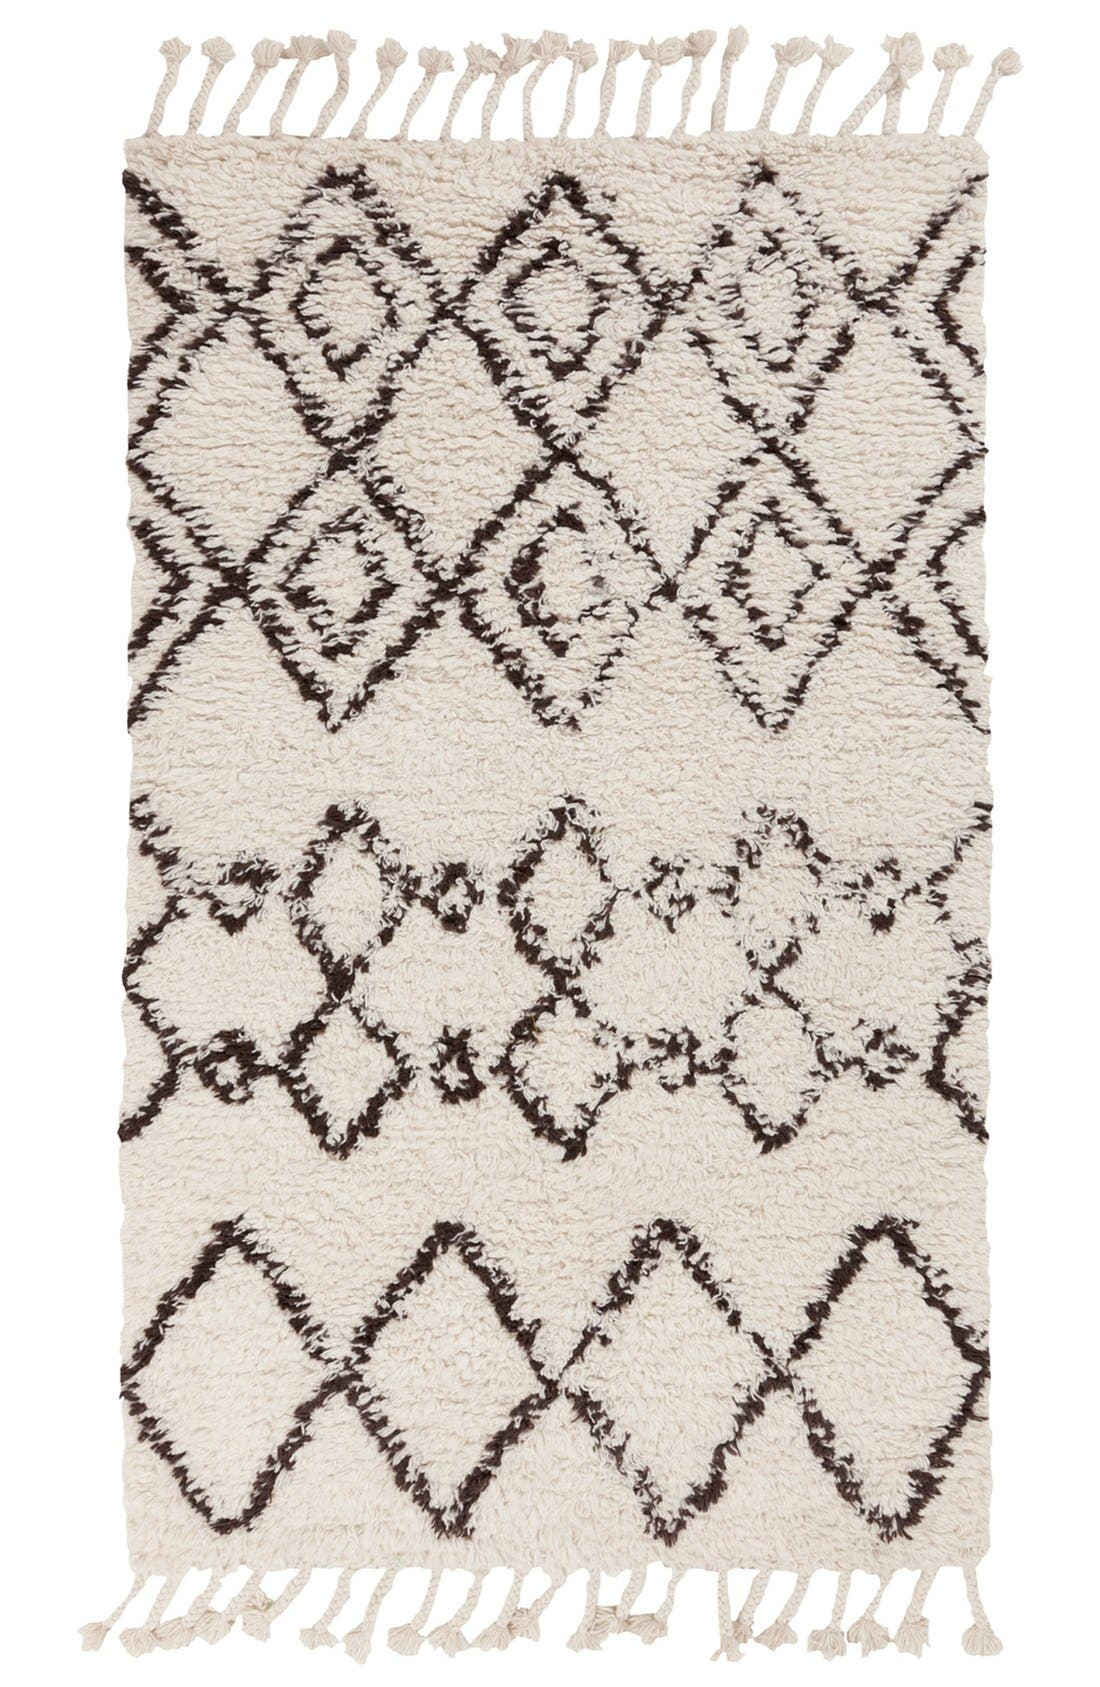 'Sherpa' Wool Rug,                             Main thumbnail 1, color,                             Ivory/ Taupe